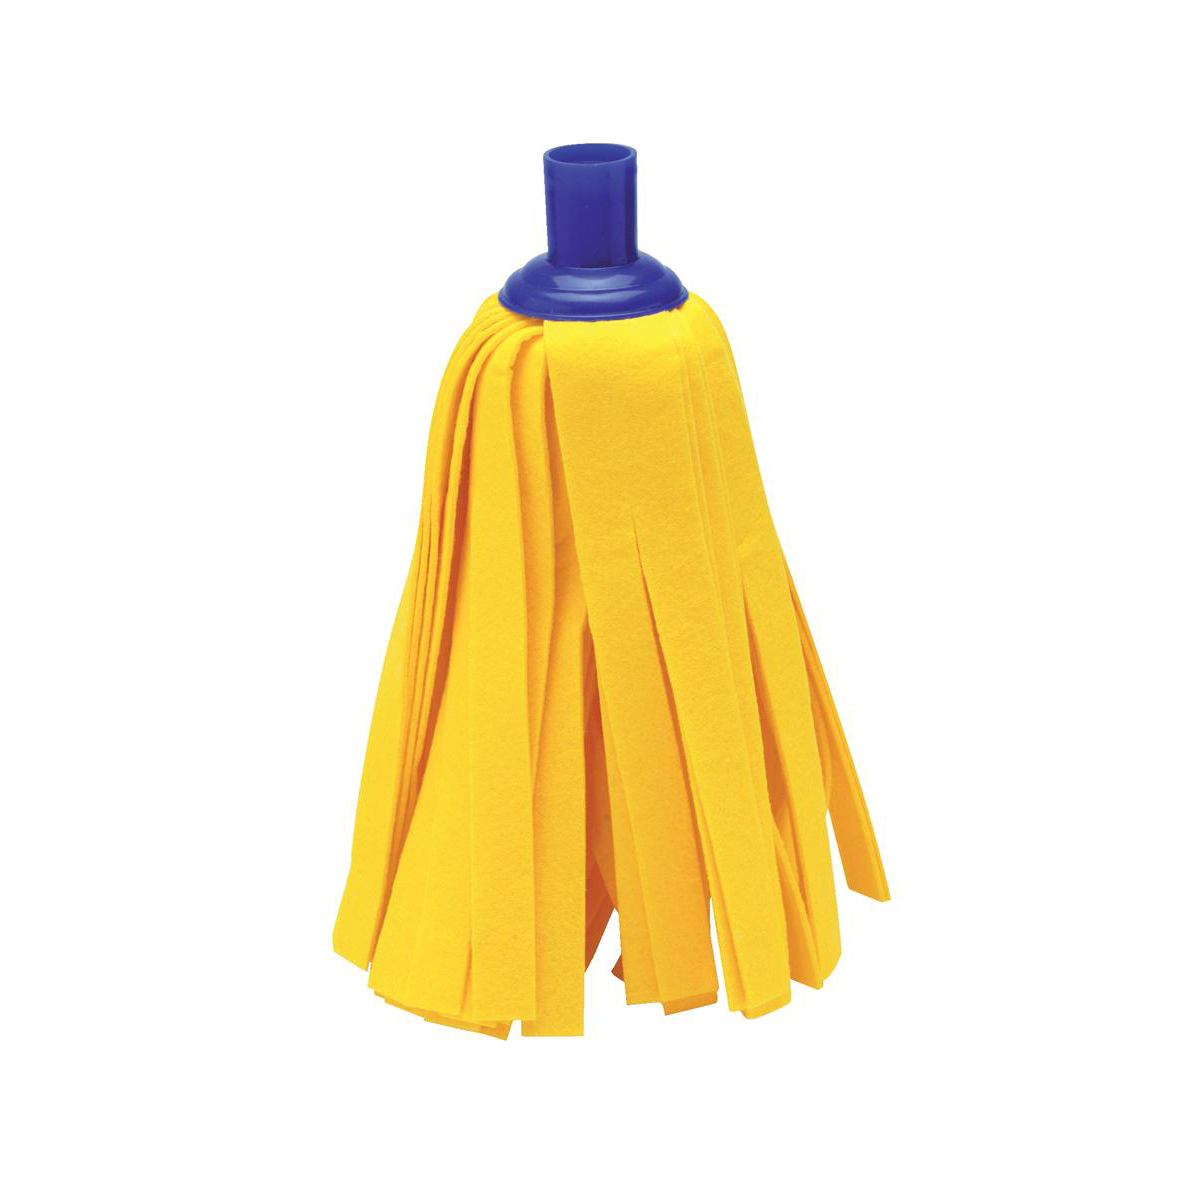 Mop heads Addis Cloth Mop Head Refill Thick Absorbent Strands and Blue Socket Ref 510522